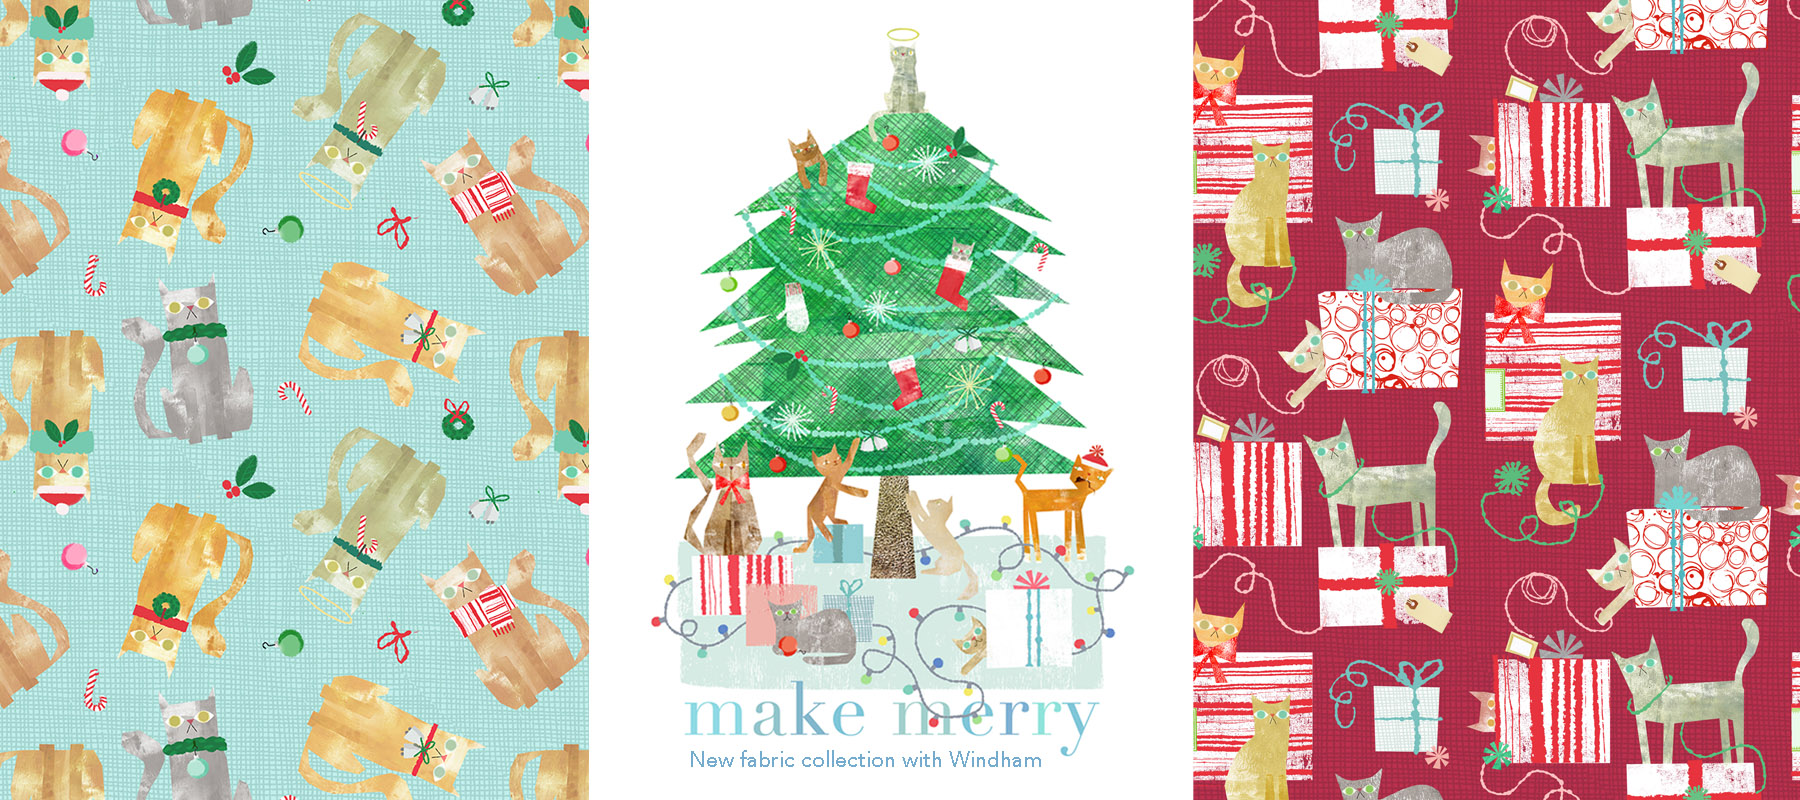 fabric_make merry 4.jpg